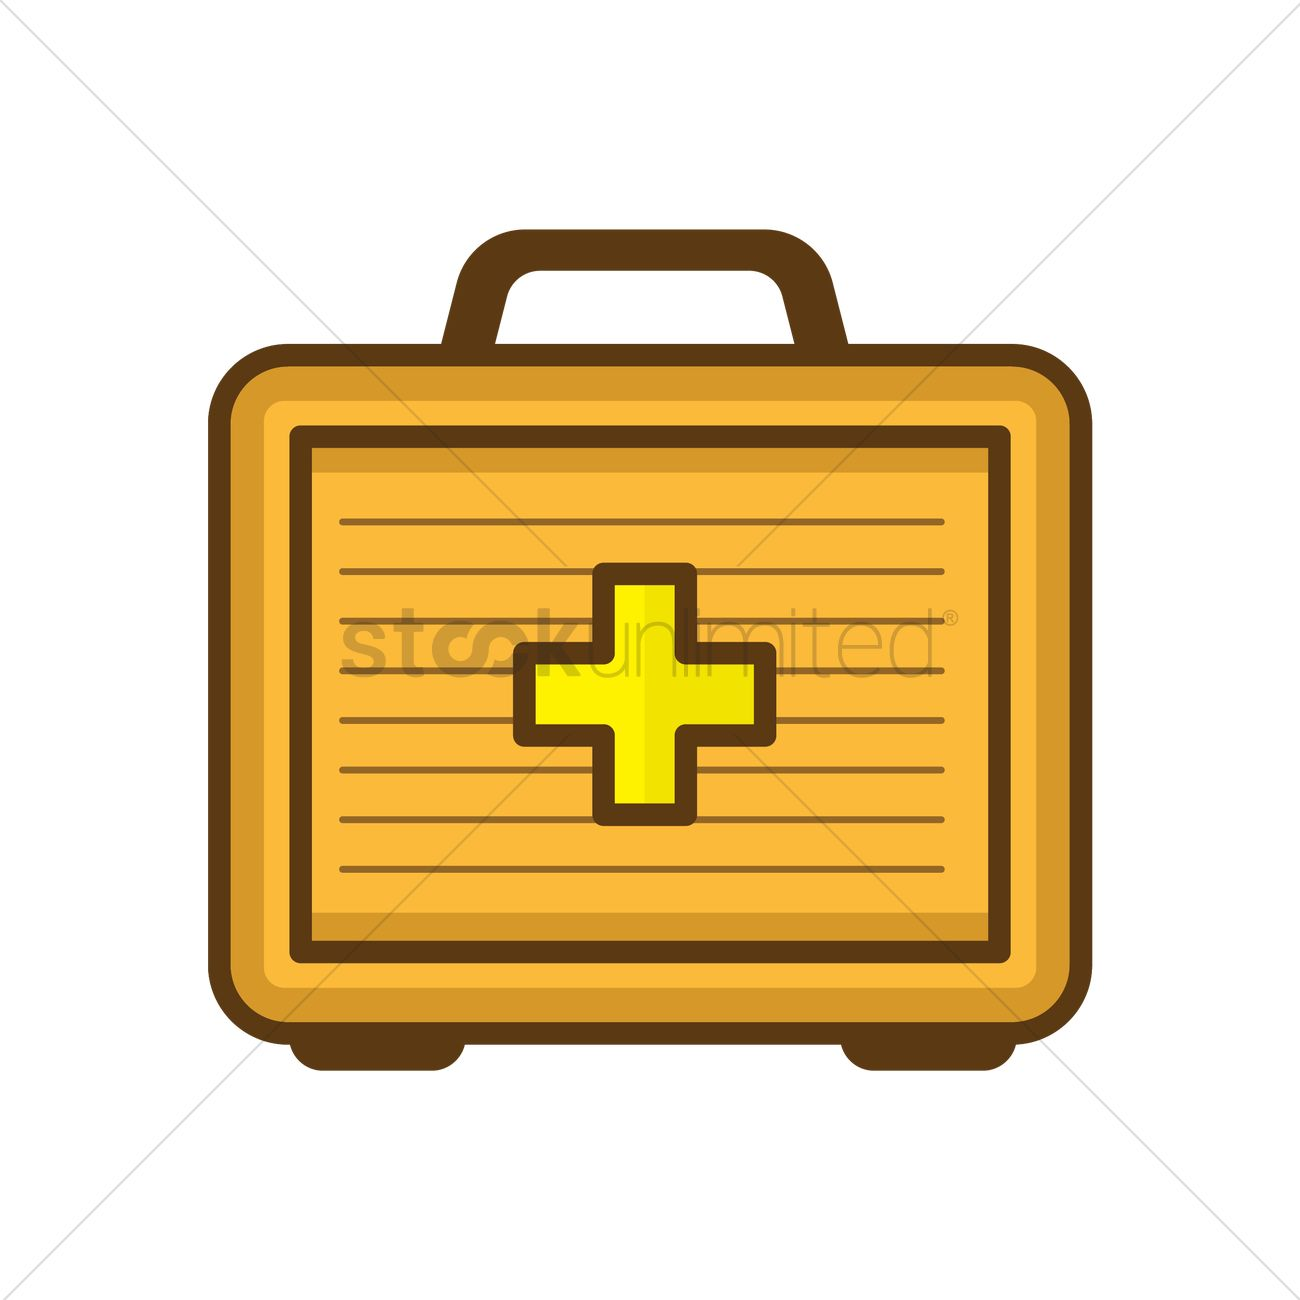 First aid kit Vector Image - 1870175 | StockUnlimited